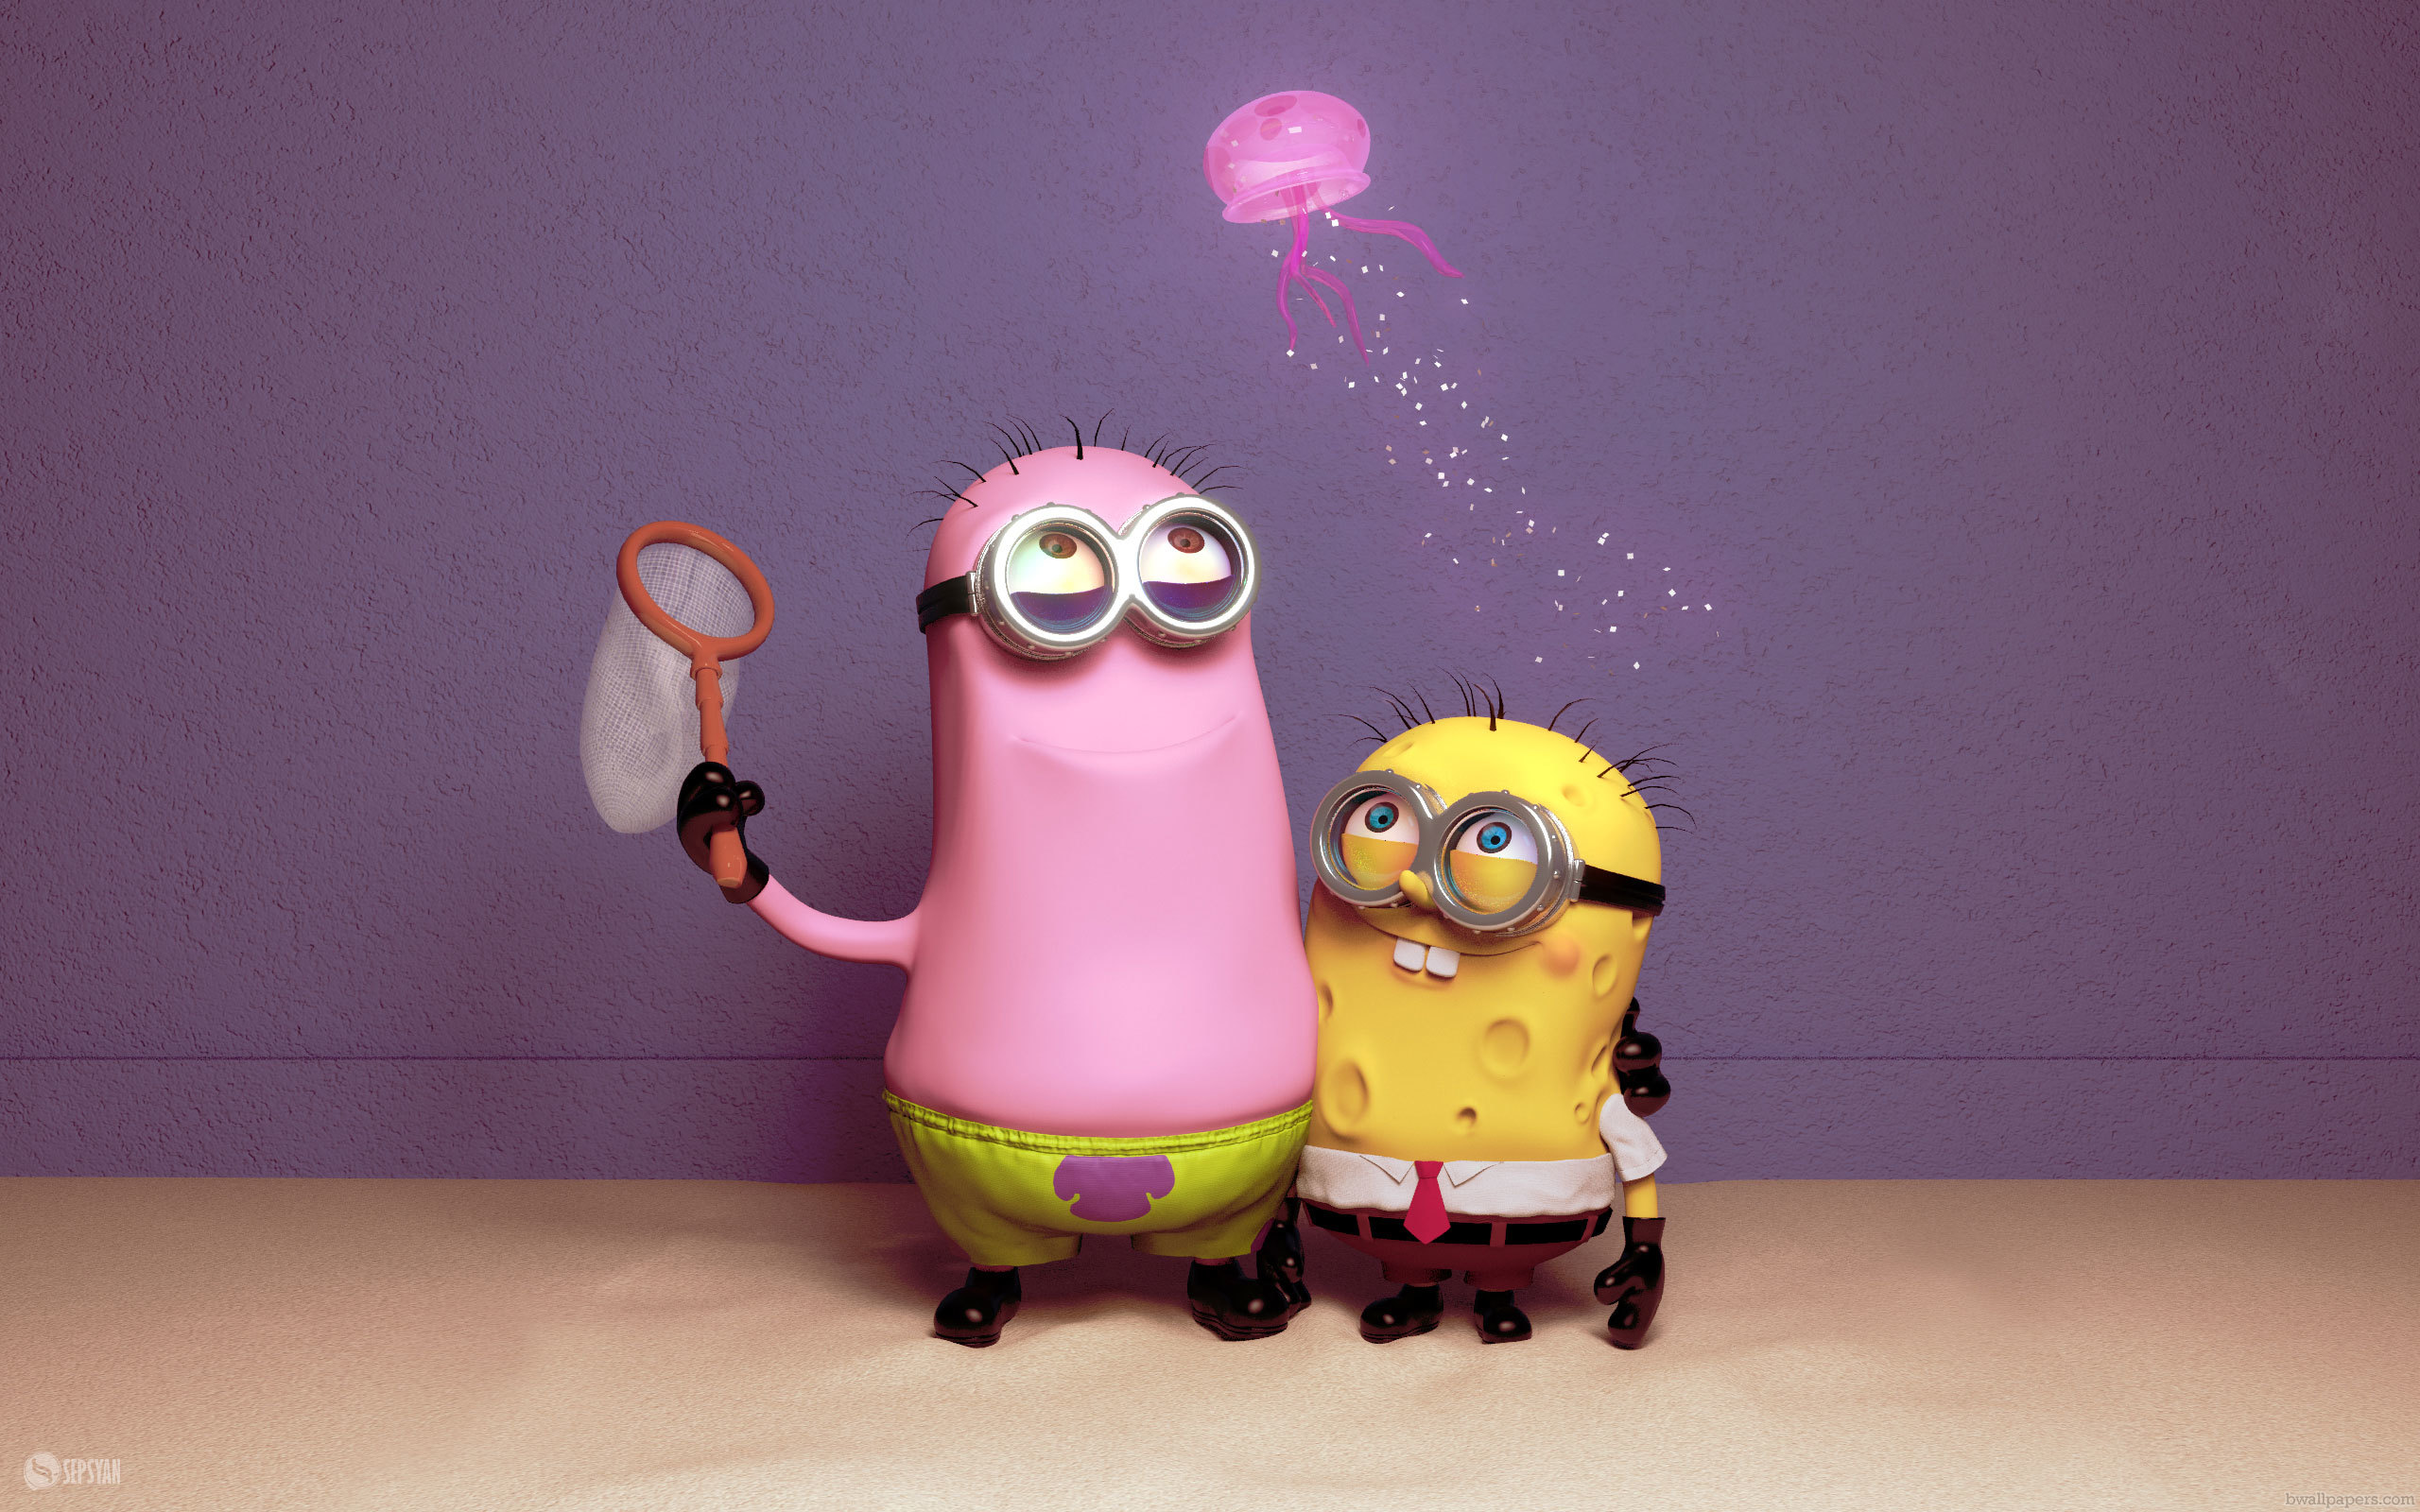 Funny Minions   Wallpaper High Definition High Quality Widescreen 2560x1600